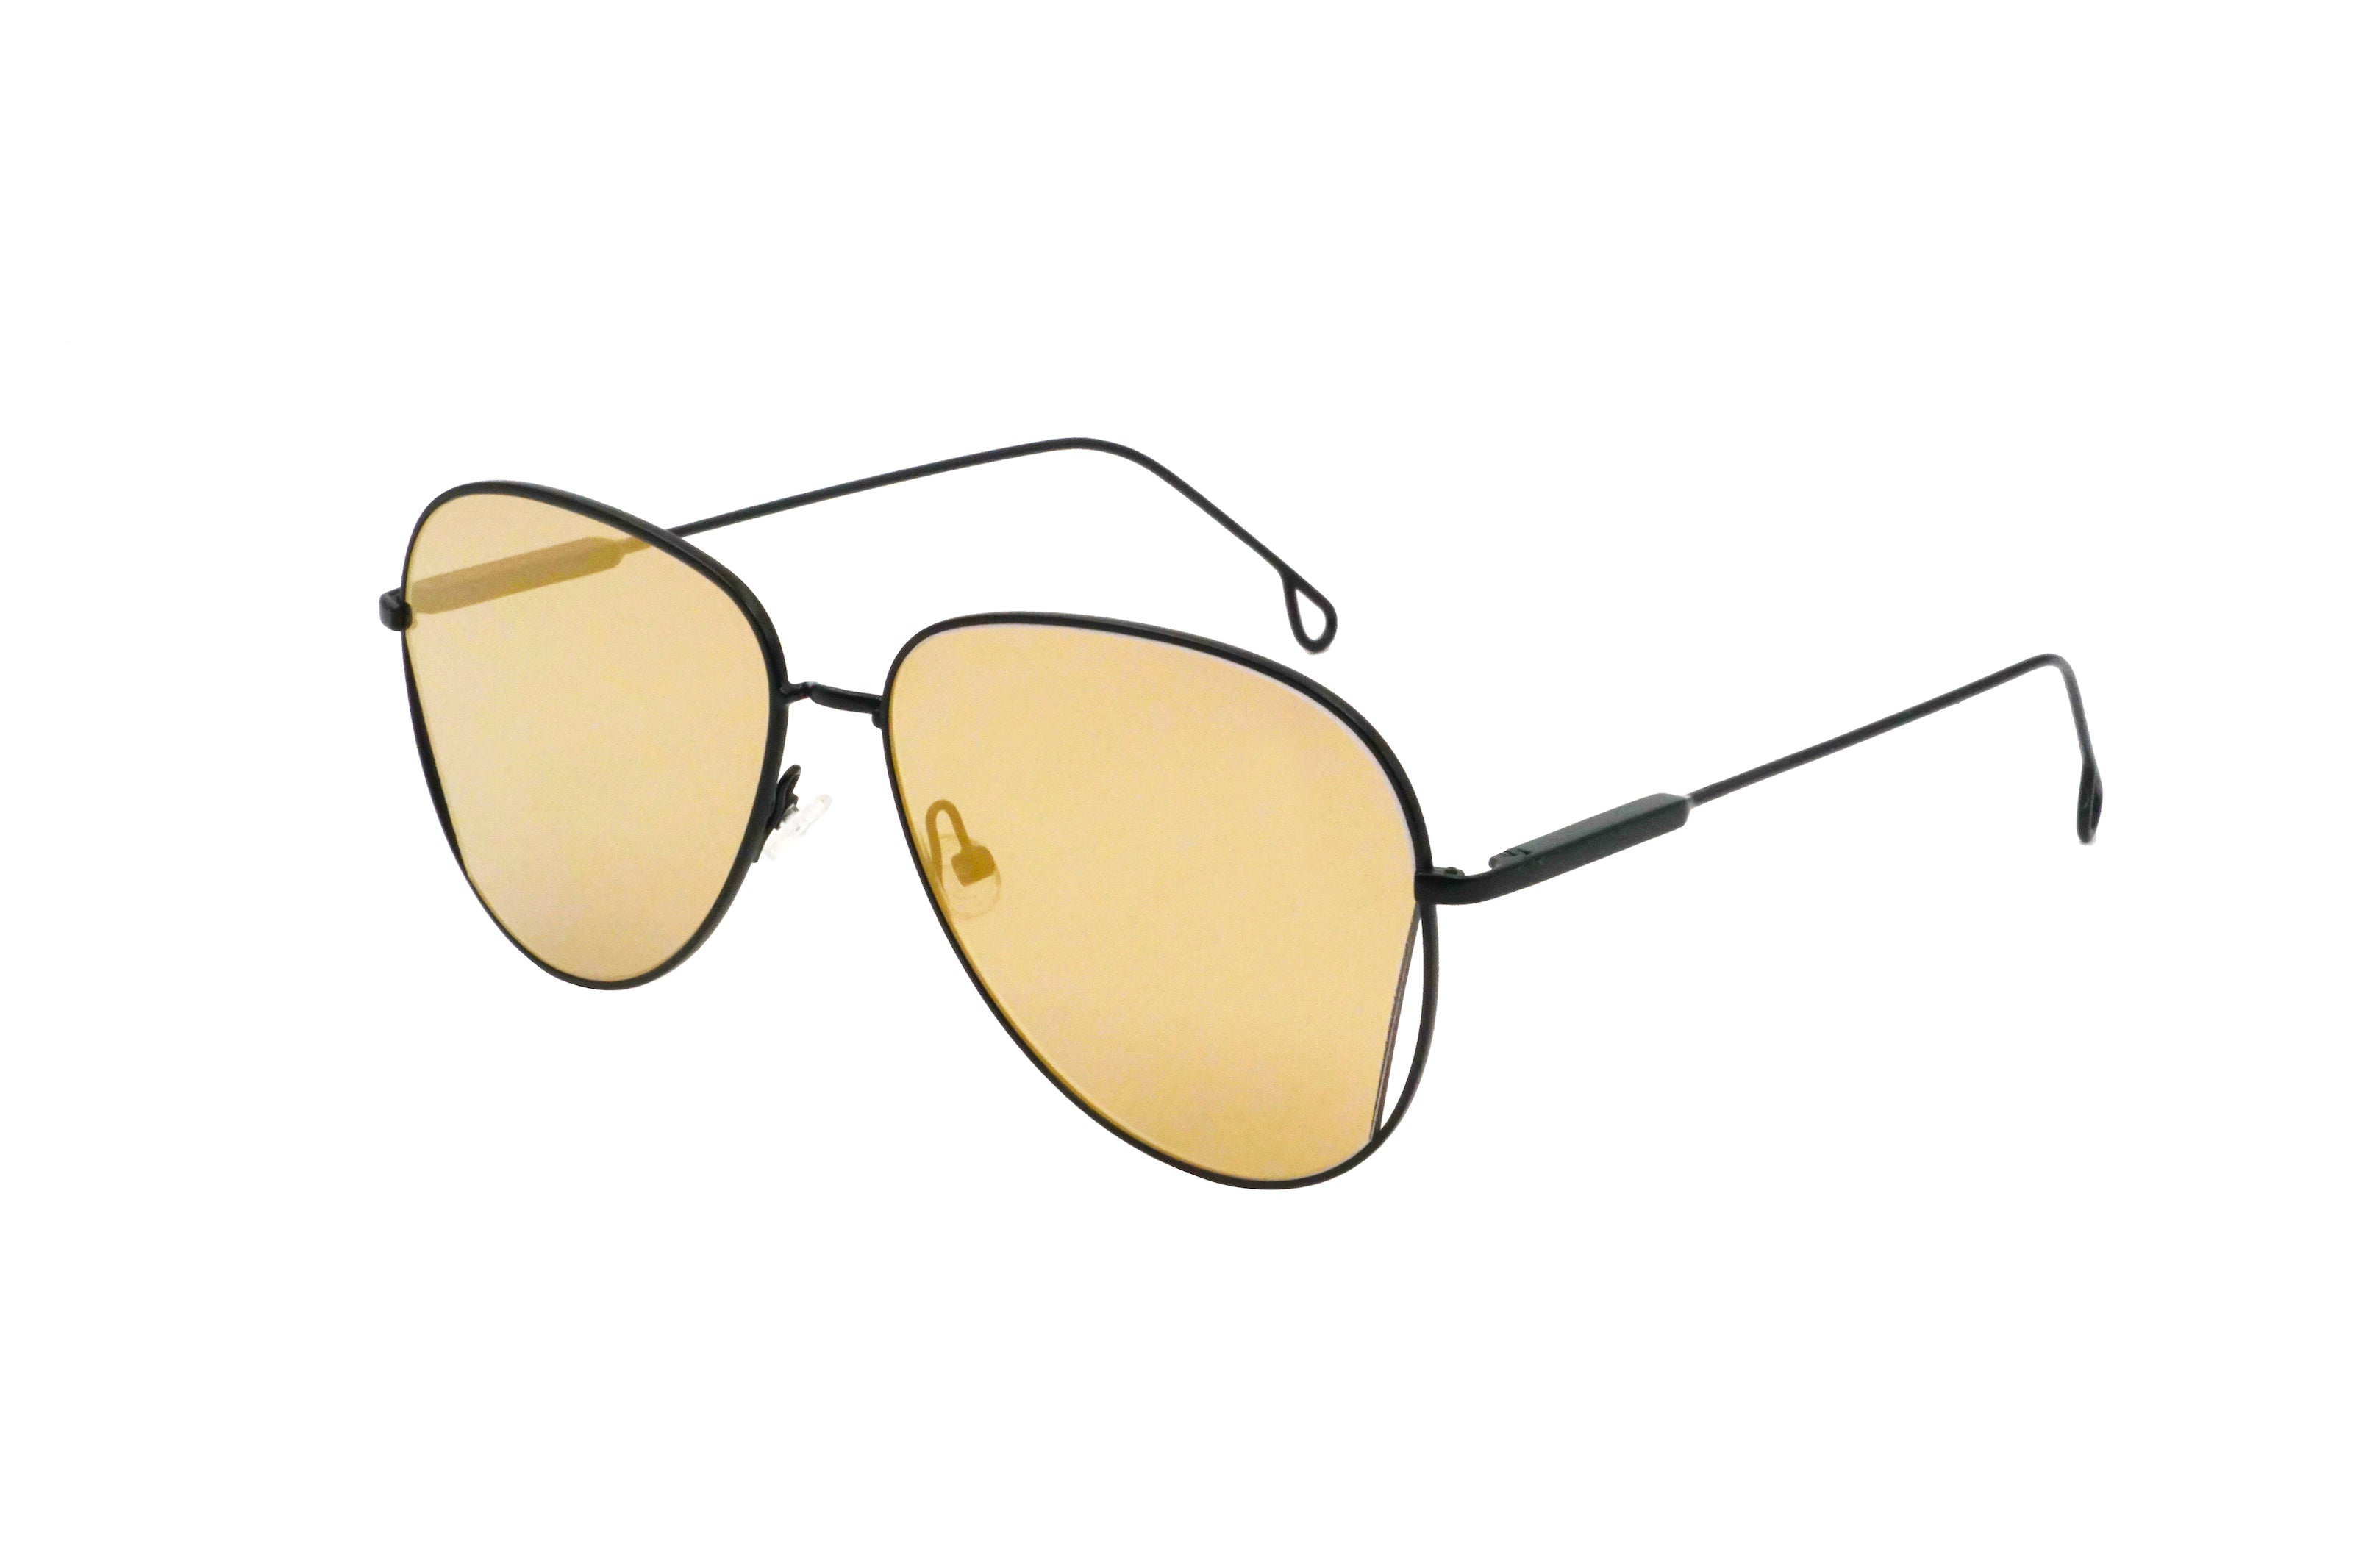 Mansfield in Gold Mirror - Peppertint - Designer sunglasses